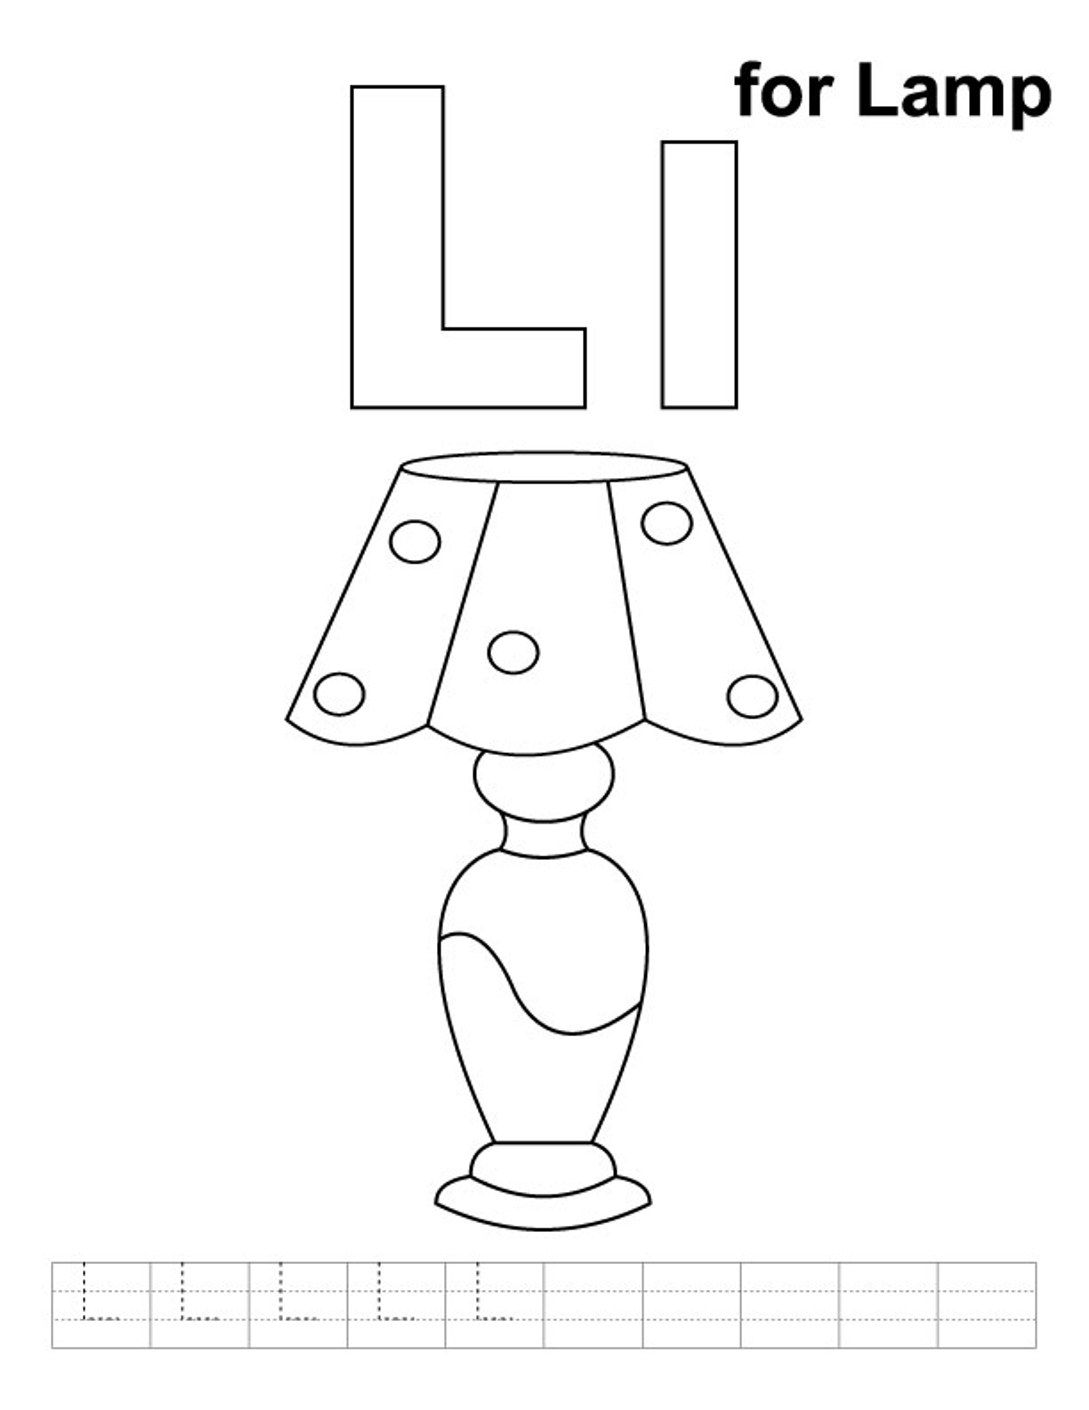 alphabet-coloring-pages-free-lamp-for-preschool